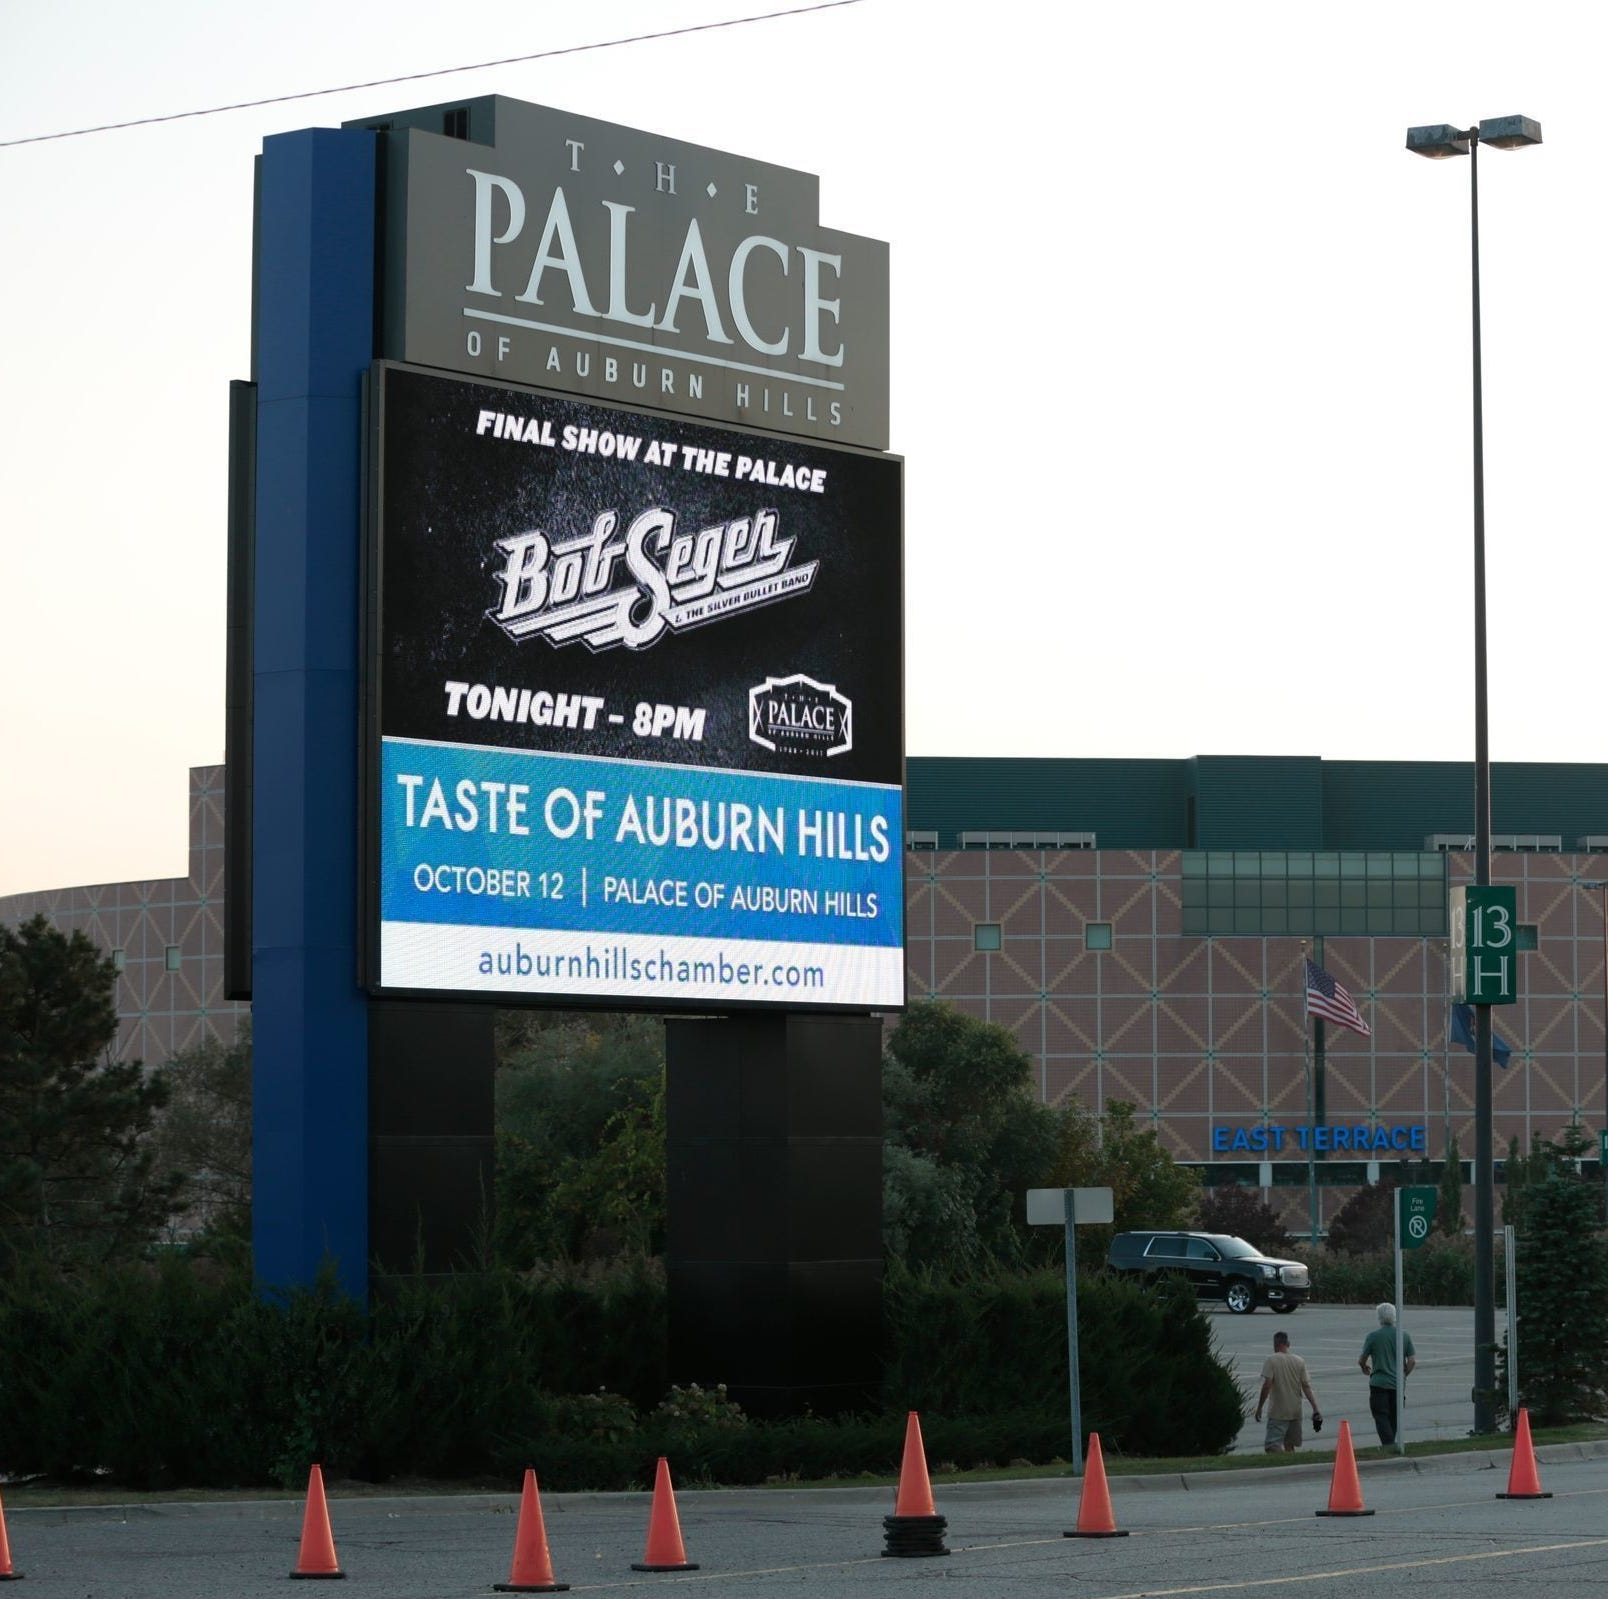 Report: Palace of Auburn Hills is being sold to real estate firm